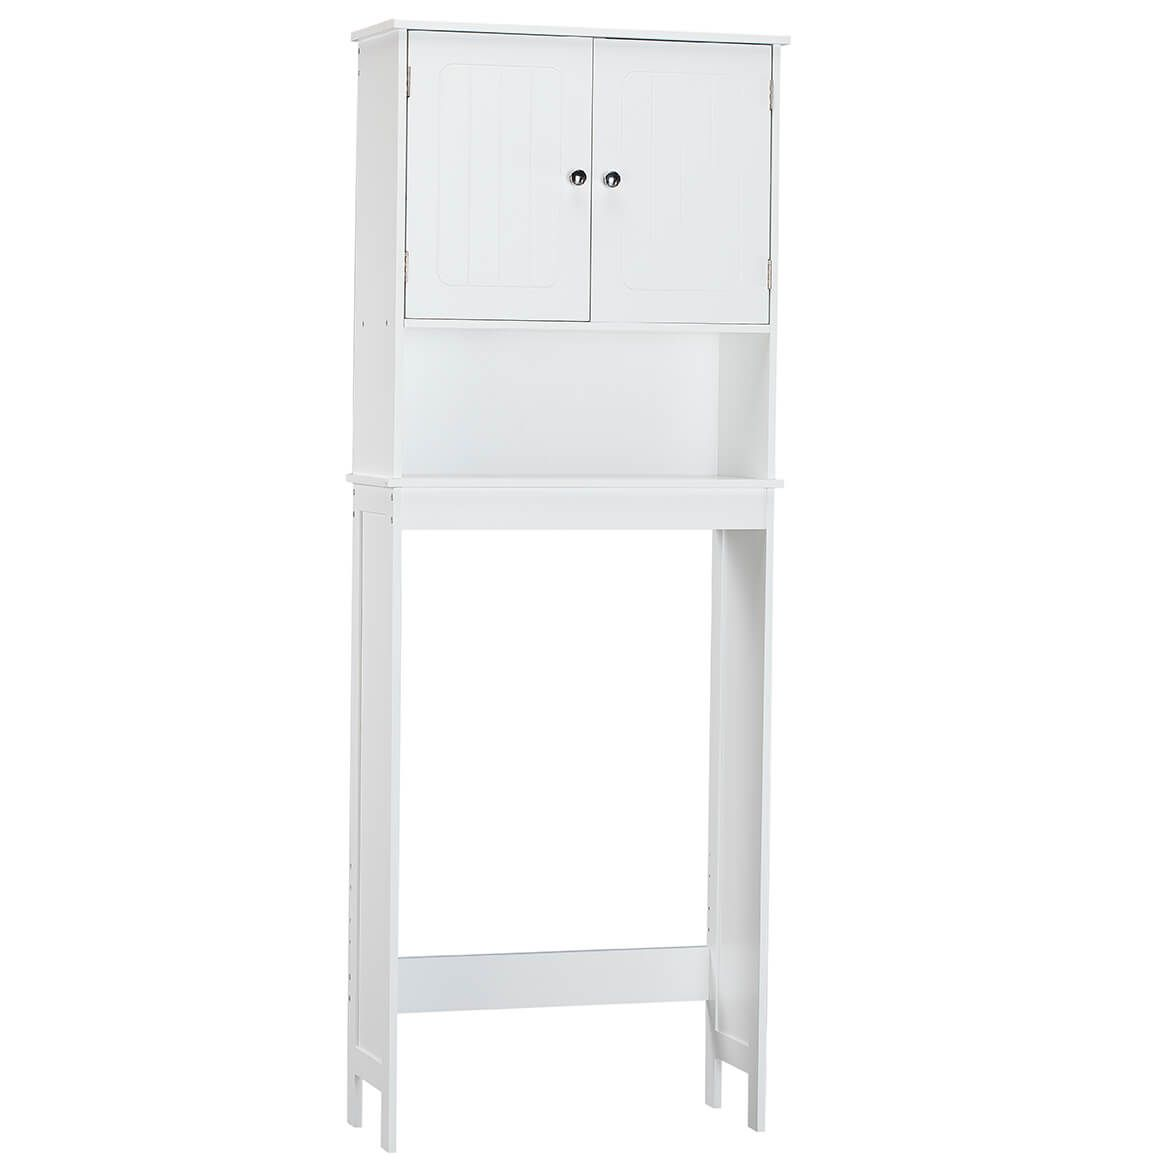 Ambrose Collection Space Saver Cabinet by OakRidge™  XL-367154